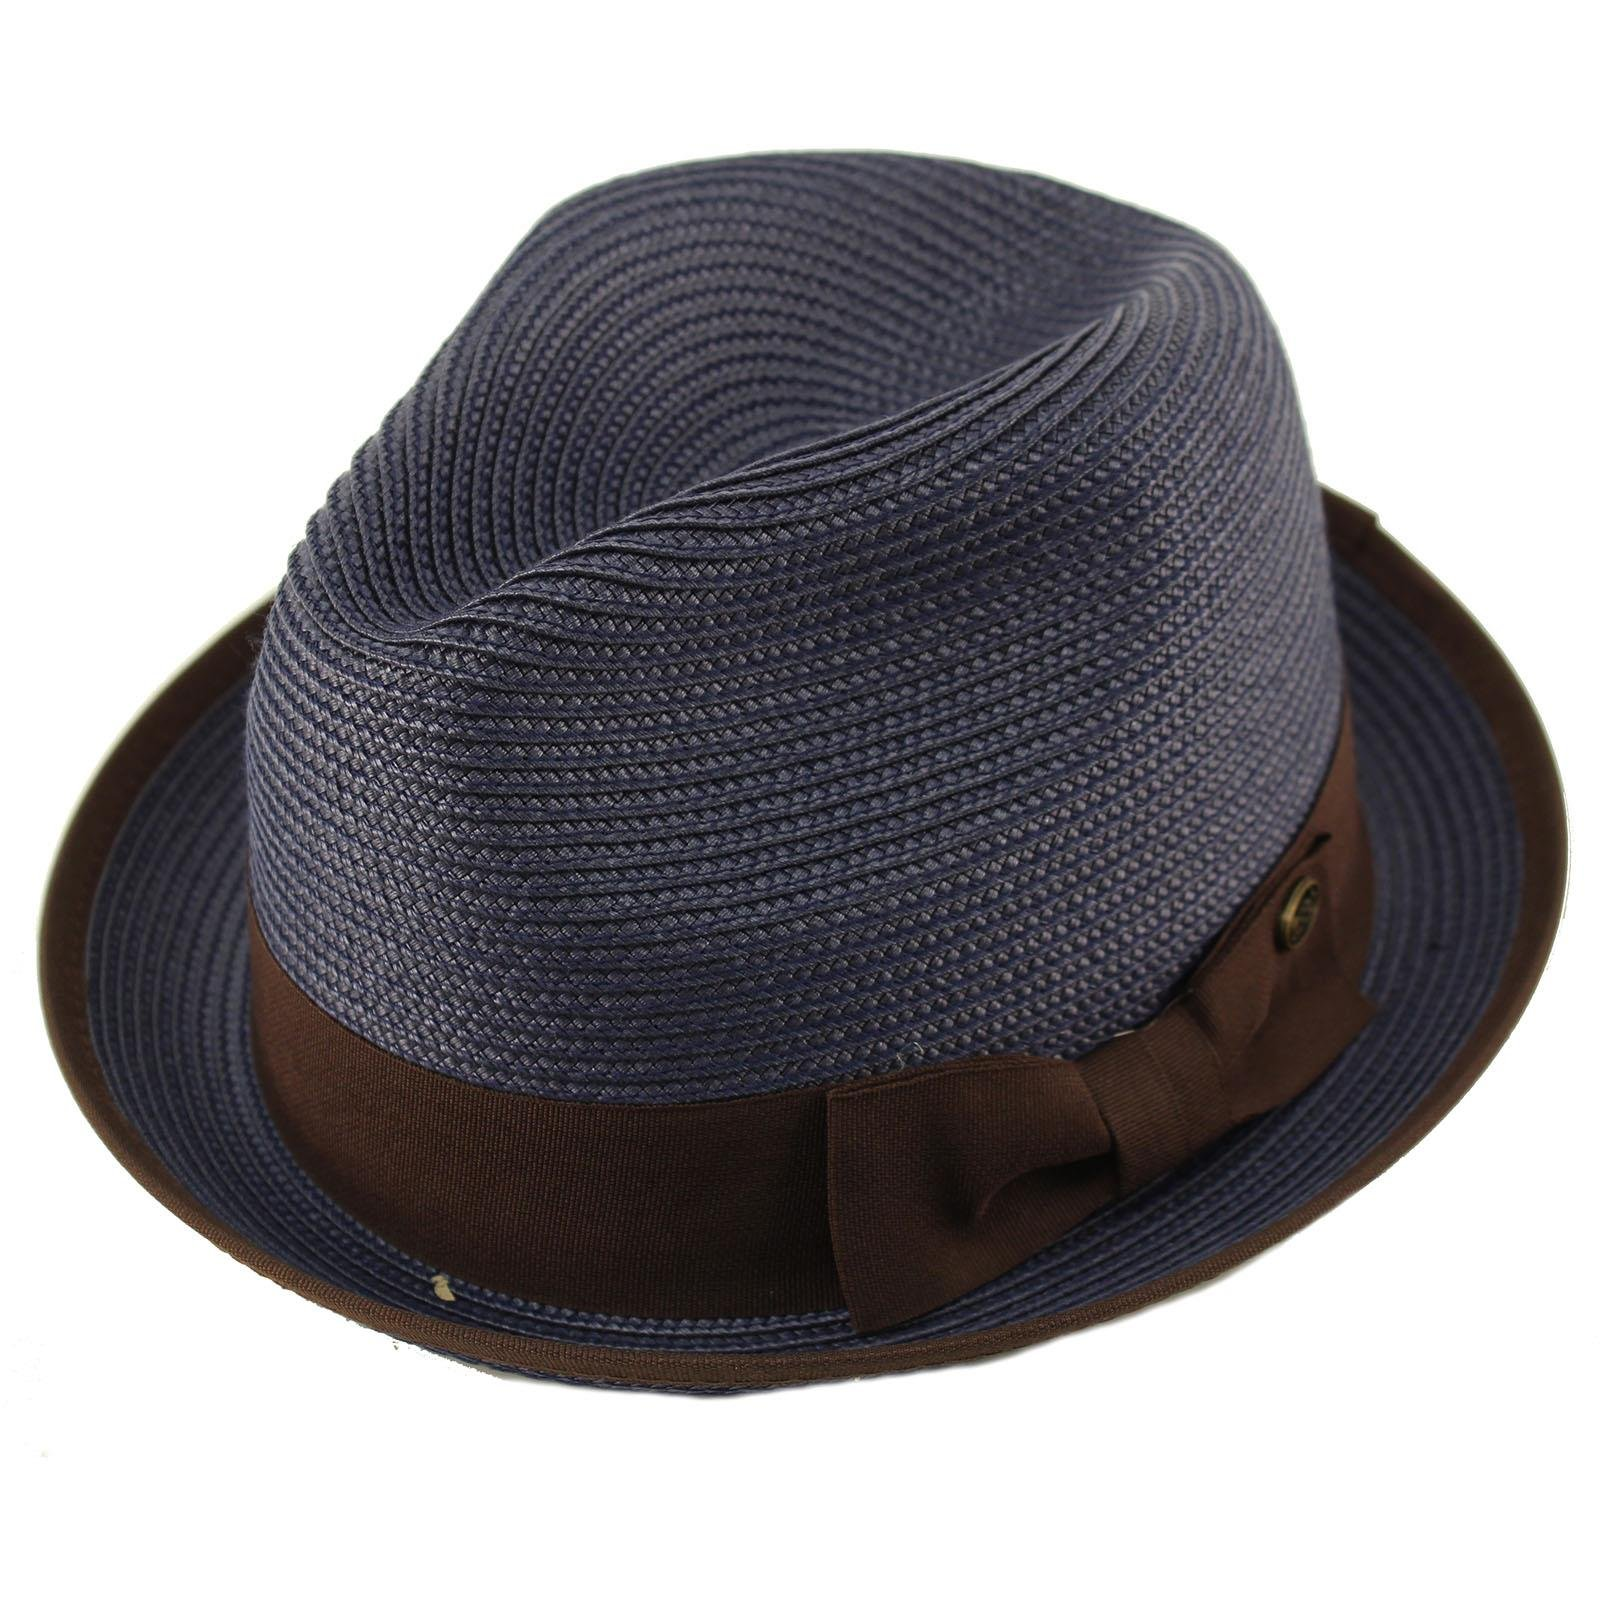 Epoch Men's Classy Travel Crushable 2tone Derby Fedora Upturn Curl Brim Hat L/XL Navy